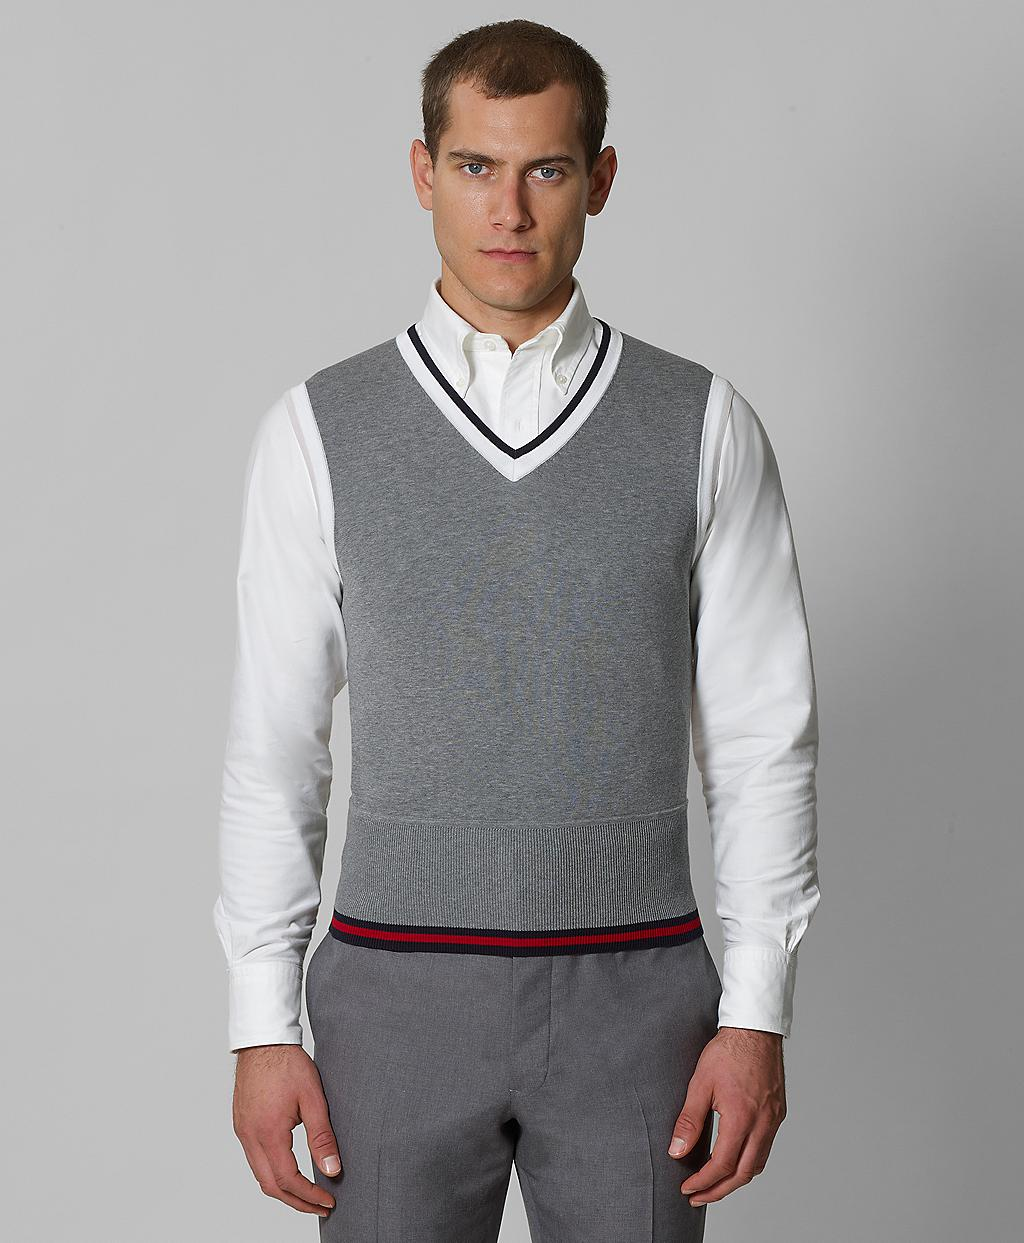 How to wear grey sweater vest